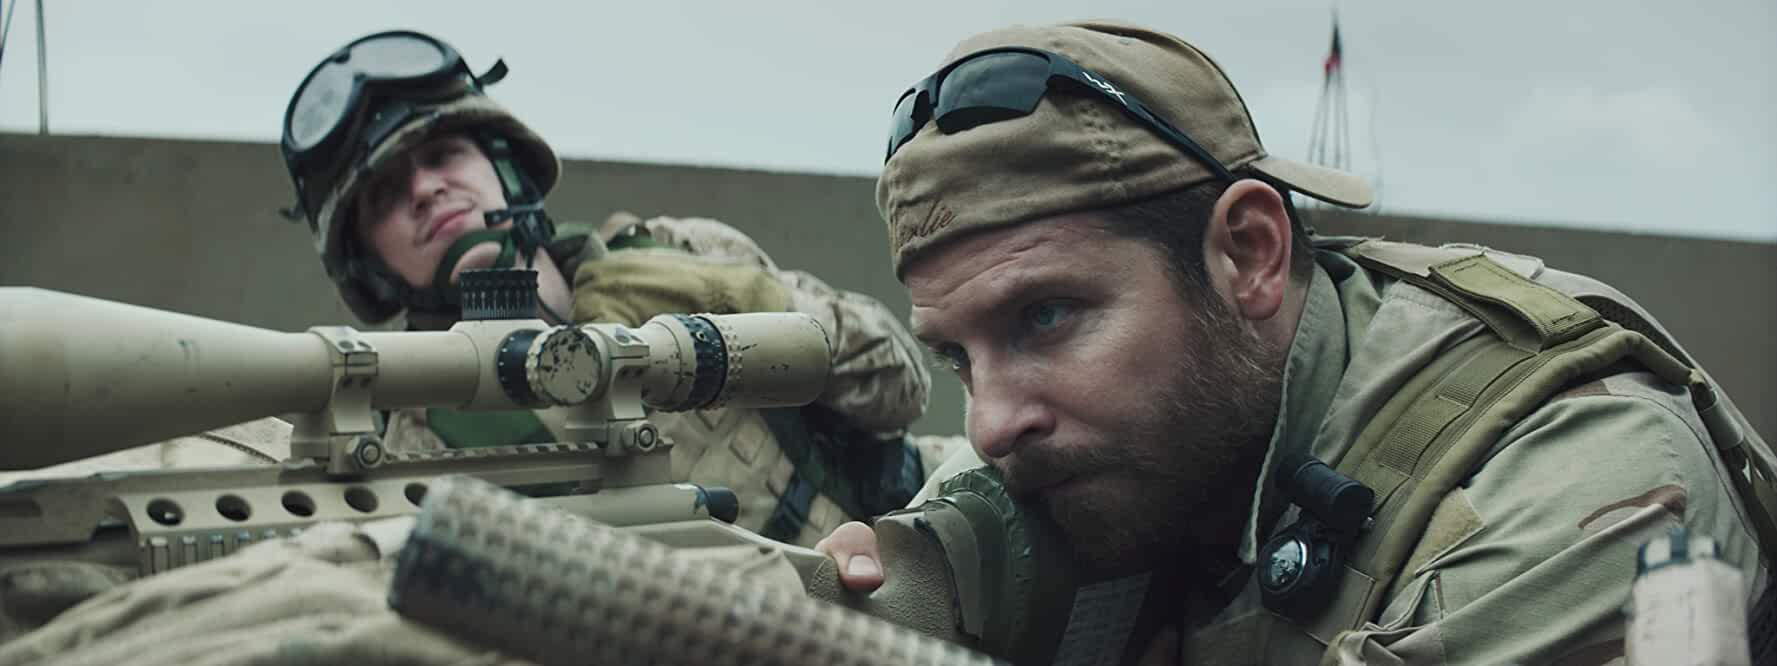 American Sniper (2014) Full Movie Download In English